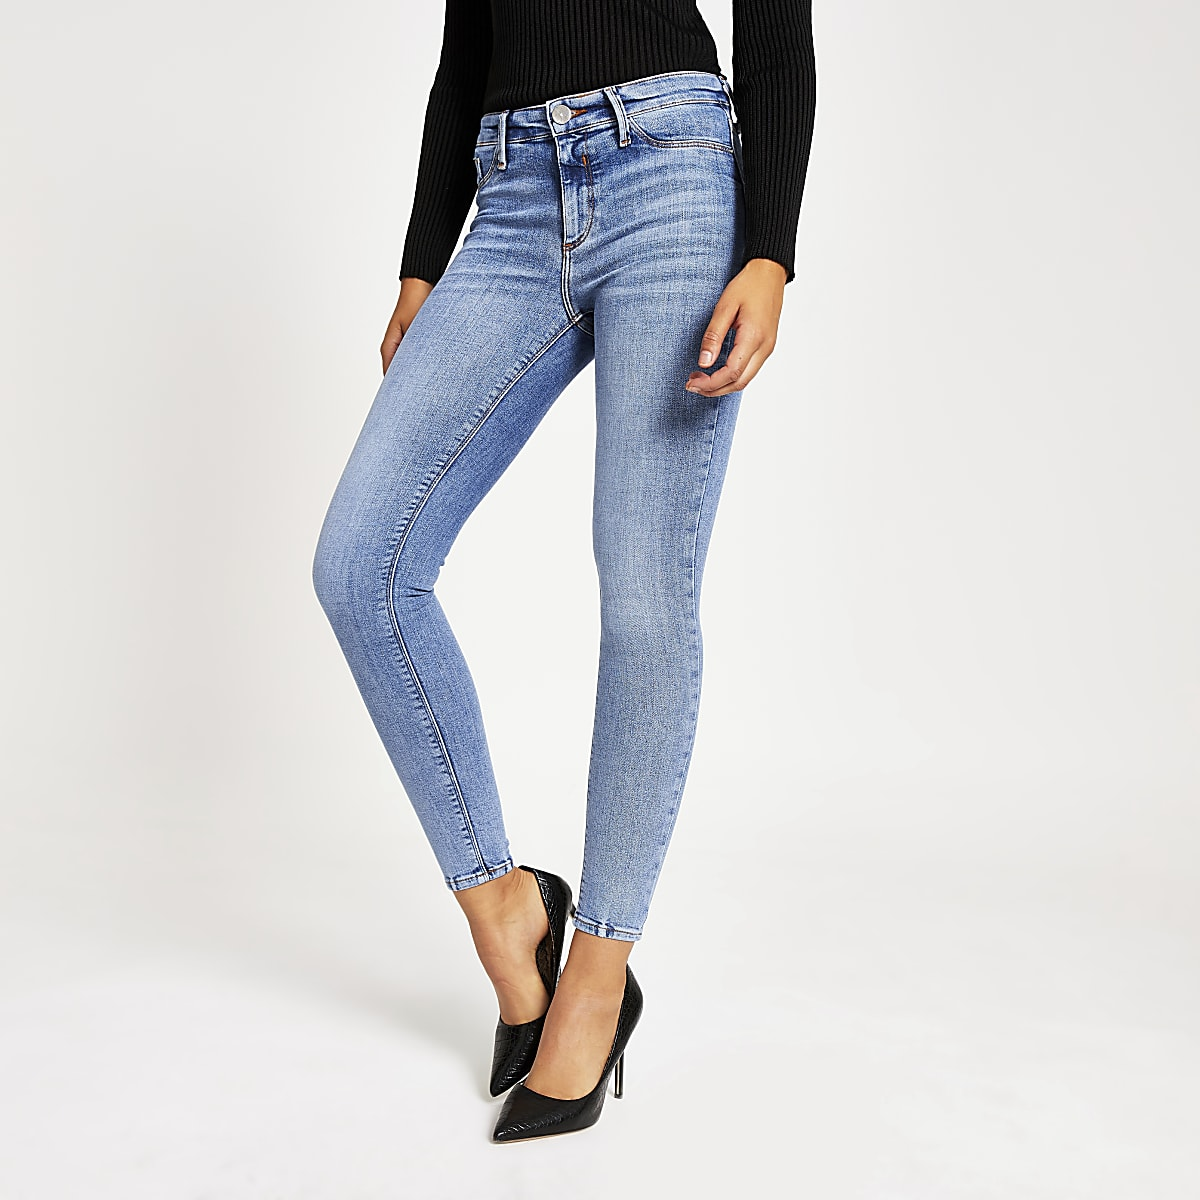 Blue Molly mid rise jeggings